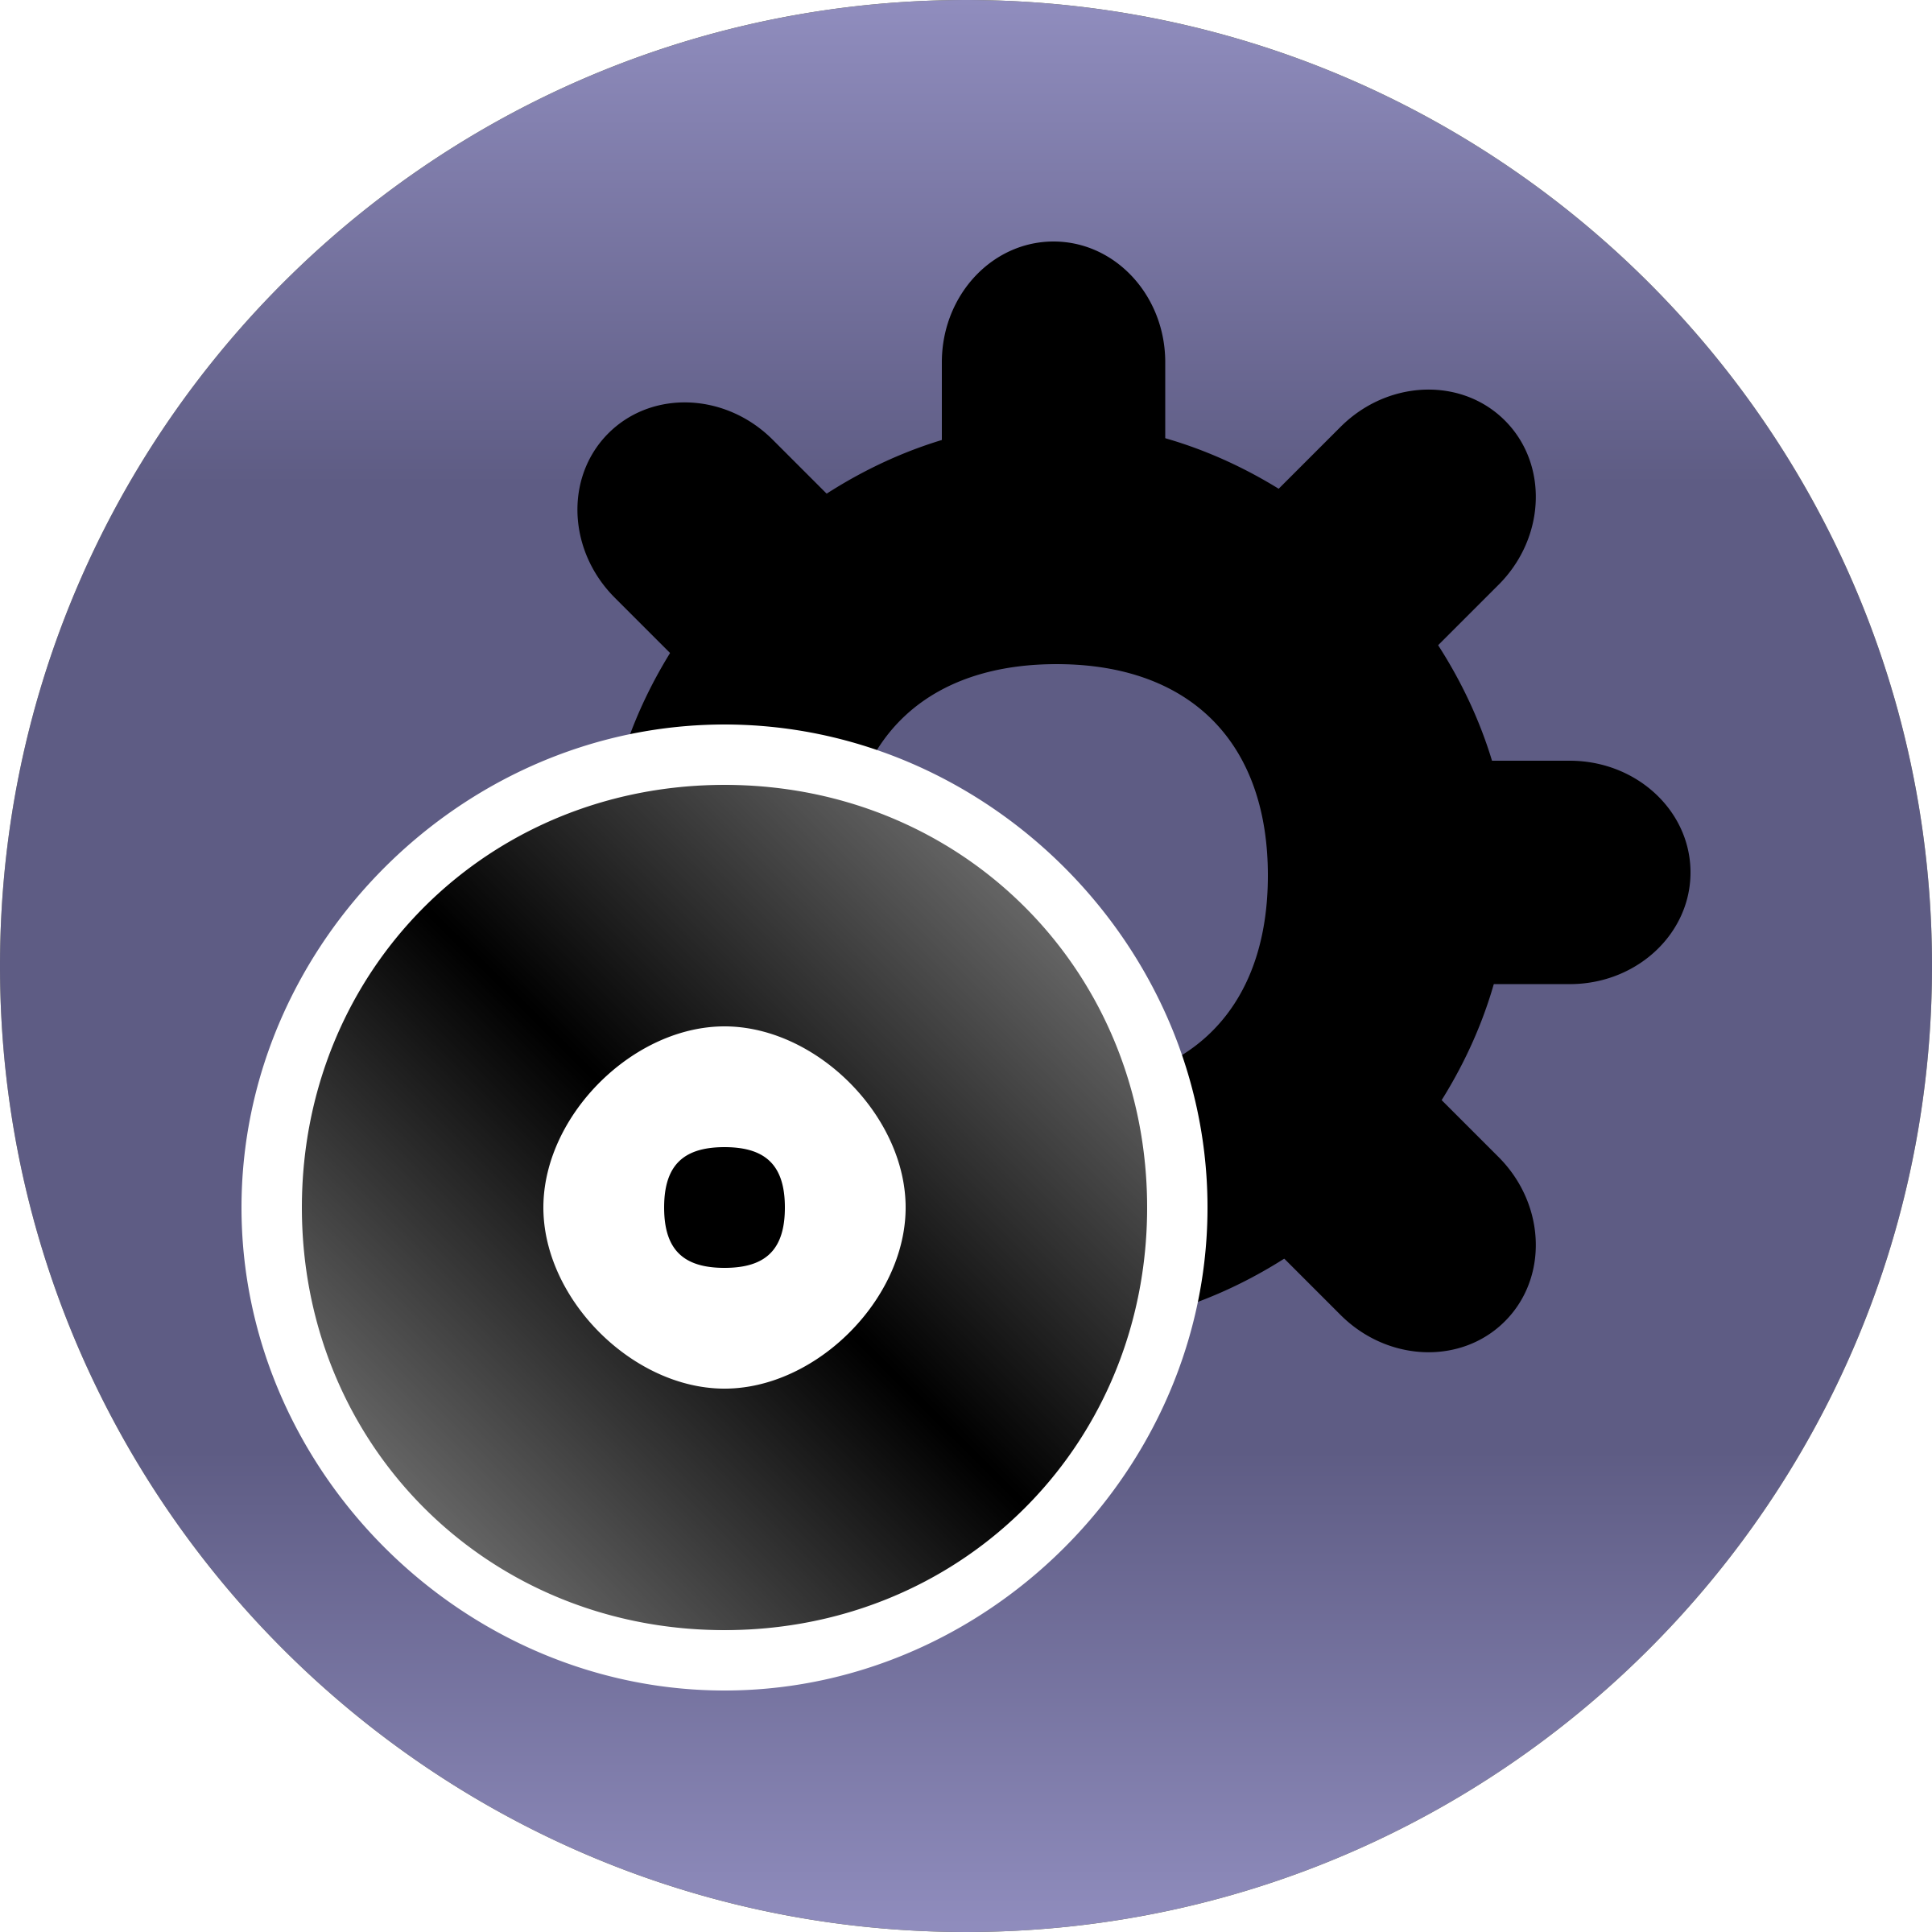 Software Icon Vector Clipart image.